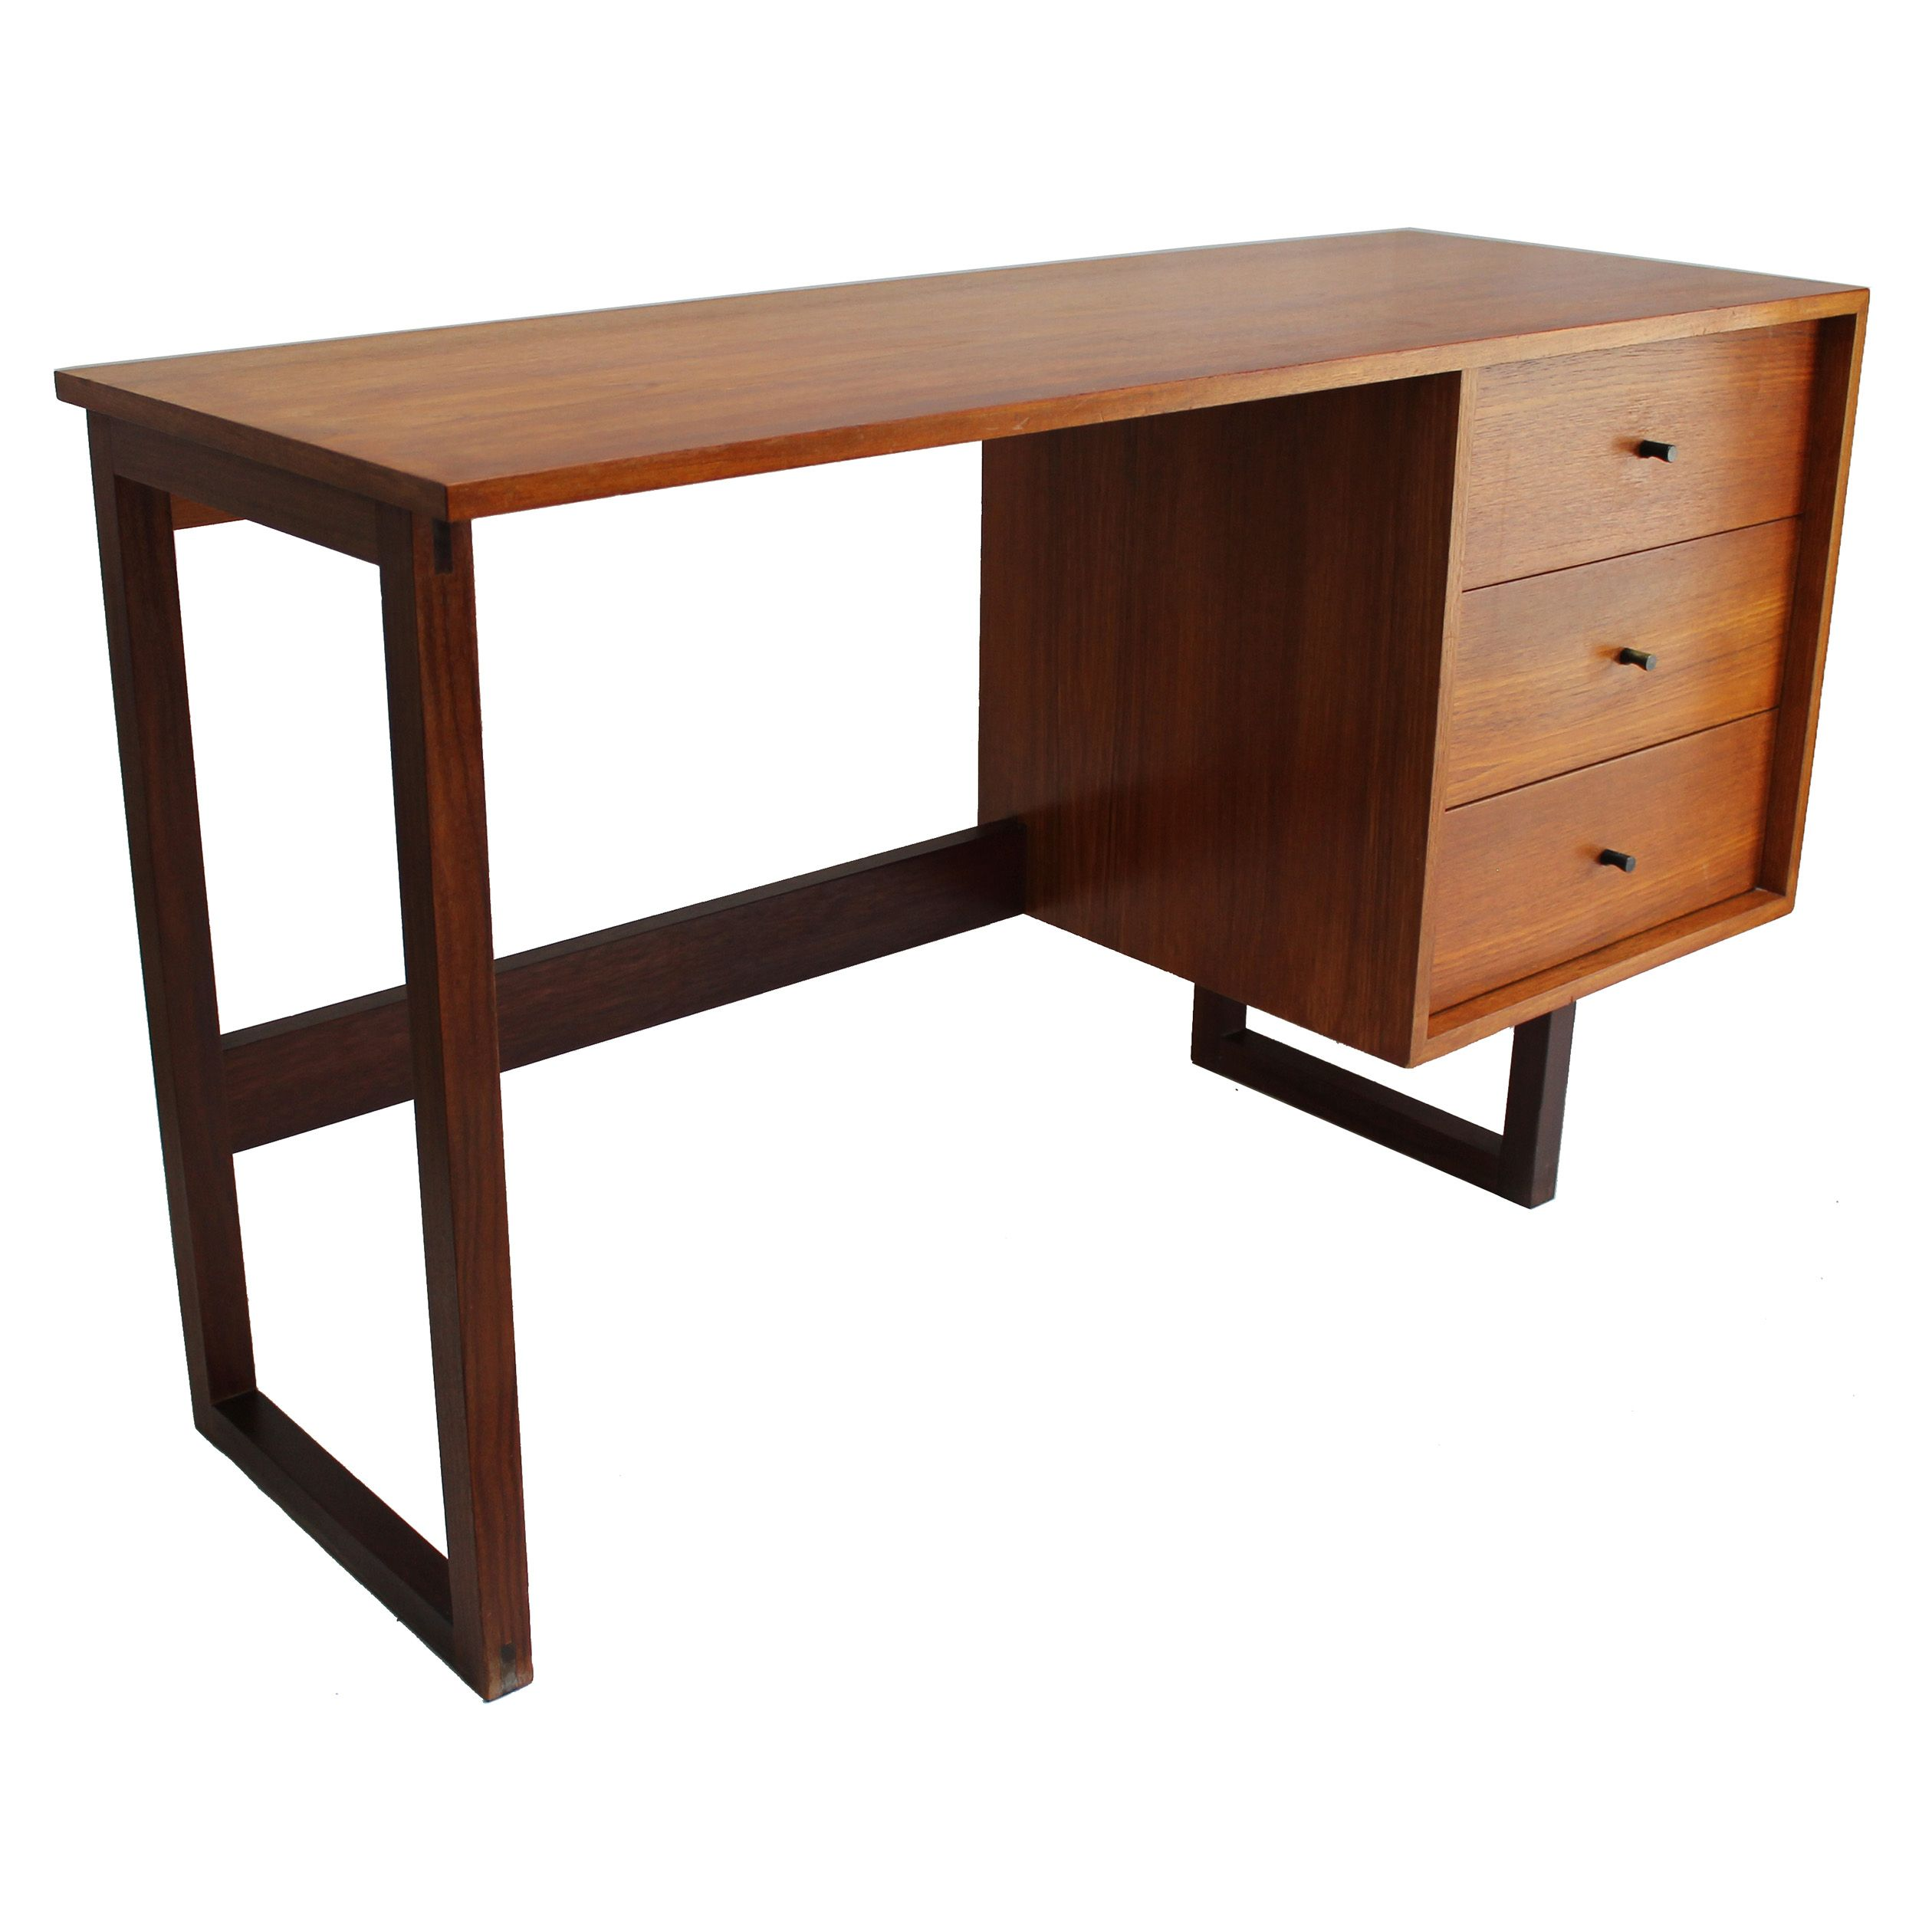 1960s R S Associates Mid Century Danish Modern Teak Desk Xoatom Com Mid Century Modern Chair Mid Century Furniture Mid Century Modern Furniture